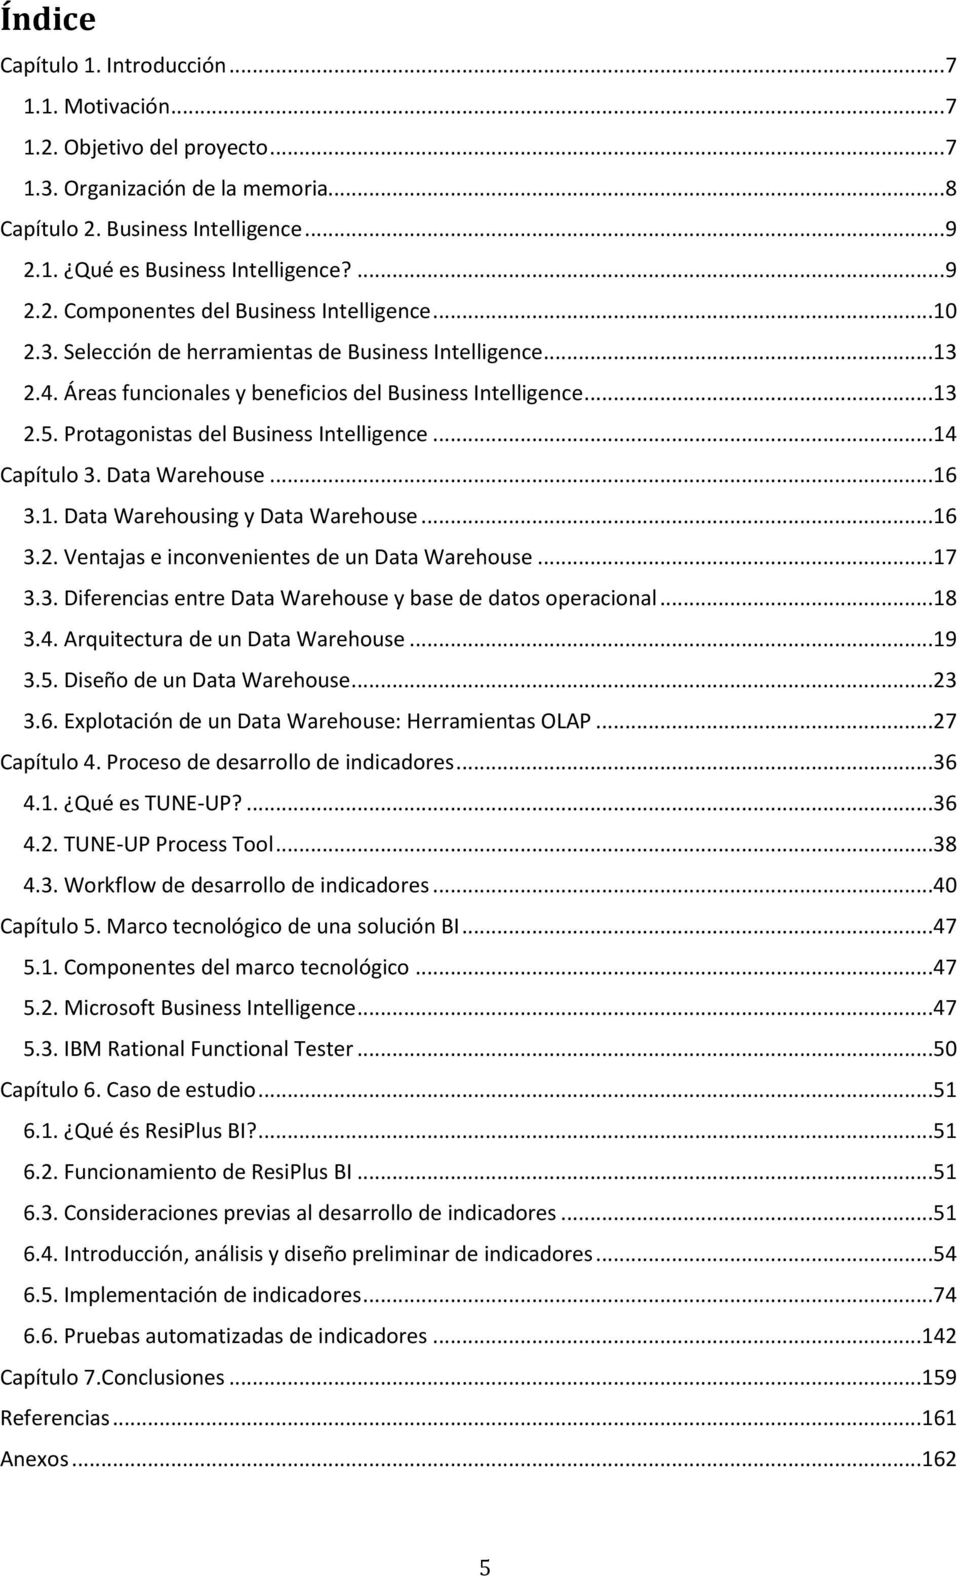 Protagonistas del Business Intelligence...14 Capítulo 3. Data Warehouse...16 3.1. Data Warehousing y Data Warehouse...16 3.2. Ventajas e inconvenientes de un Data Warehouse...17 3.3. Diferencias entre Data Warehouse y base de datos operacional.